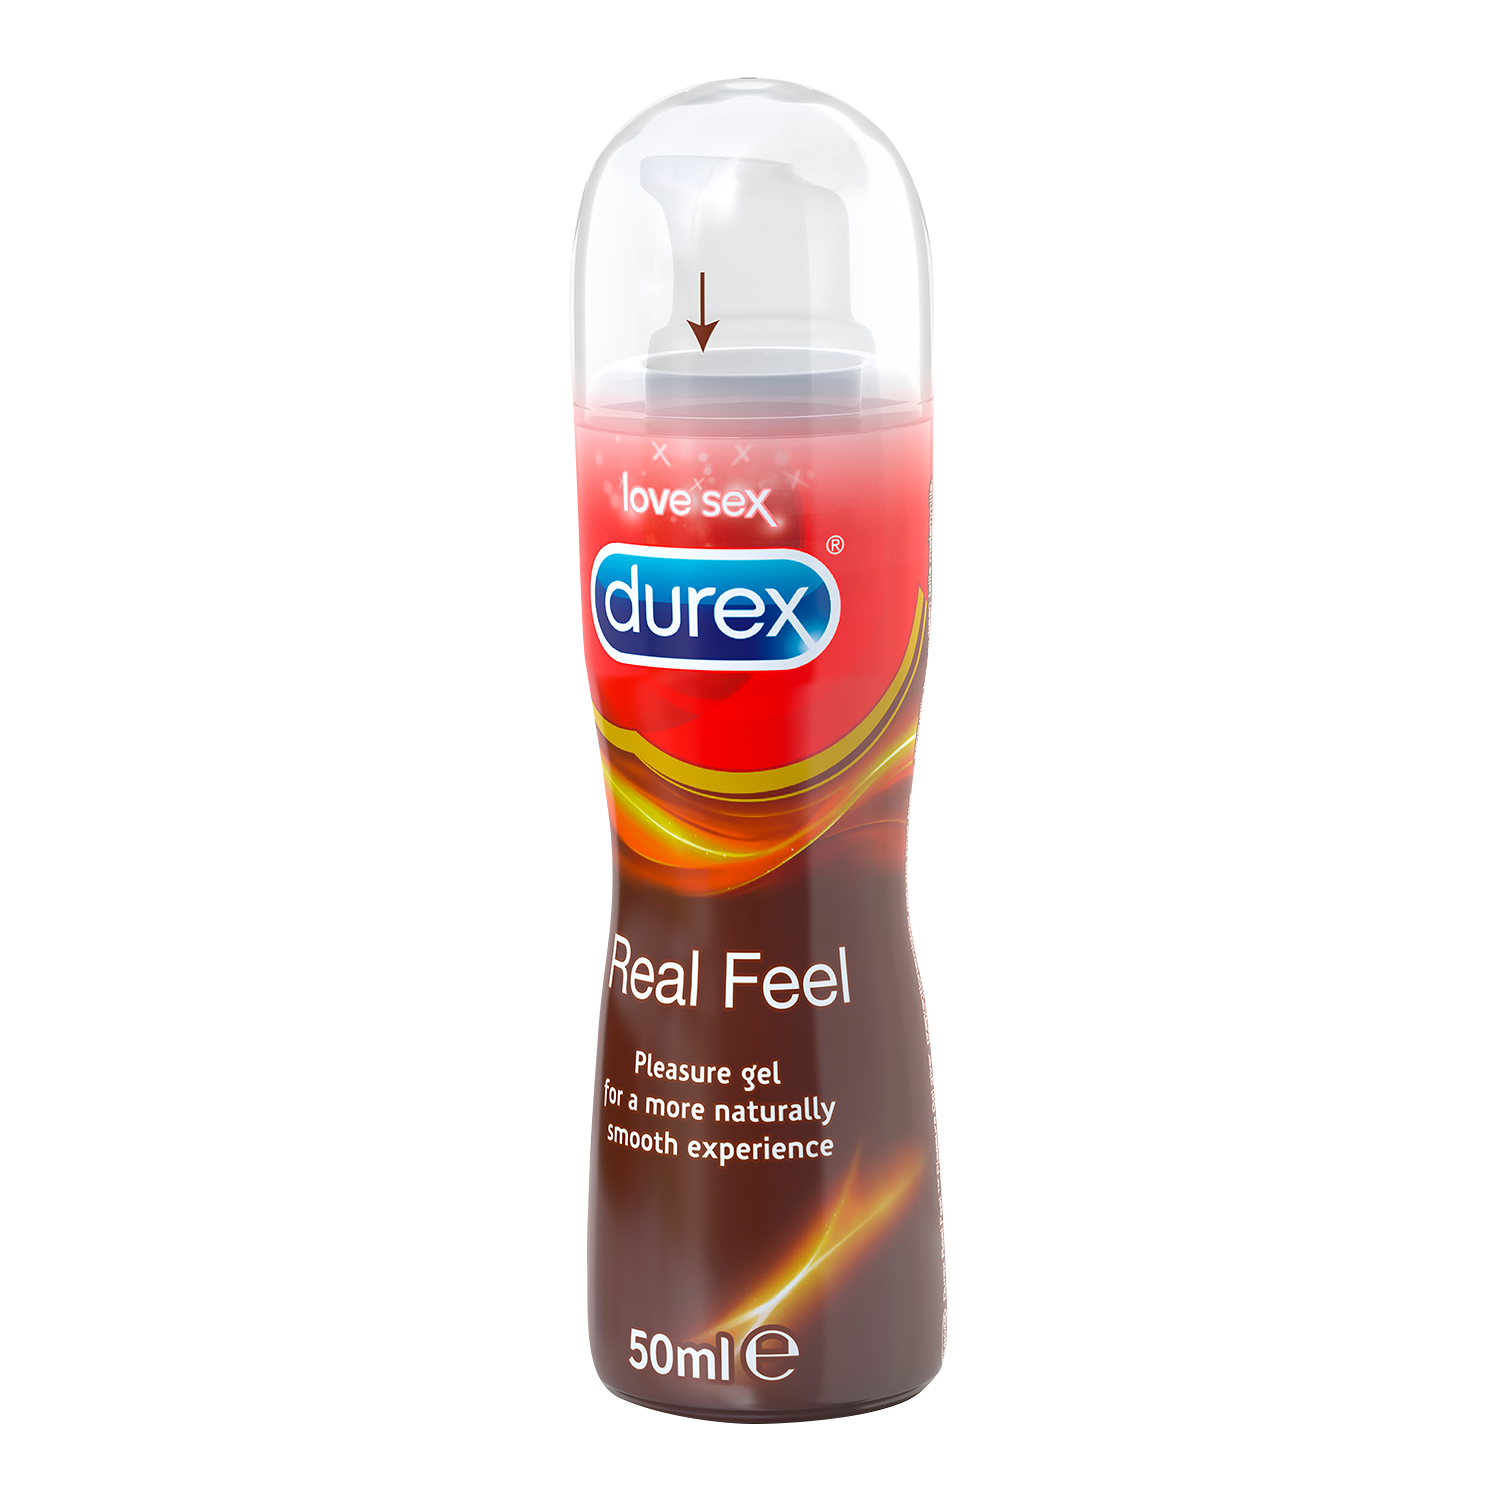 Durex Real Feel Pleasure Gel 50 ml